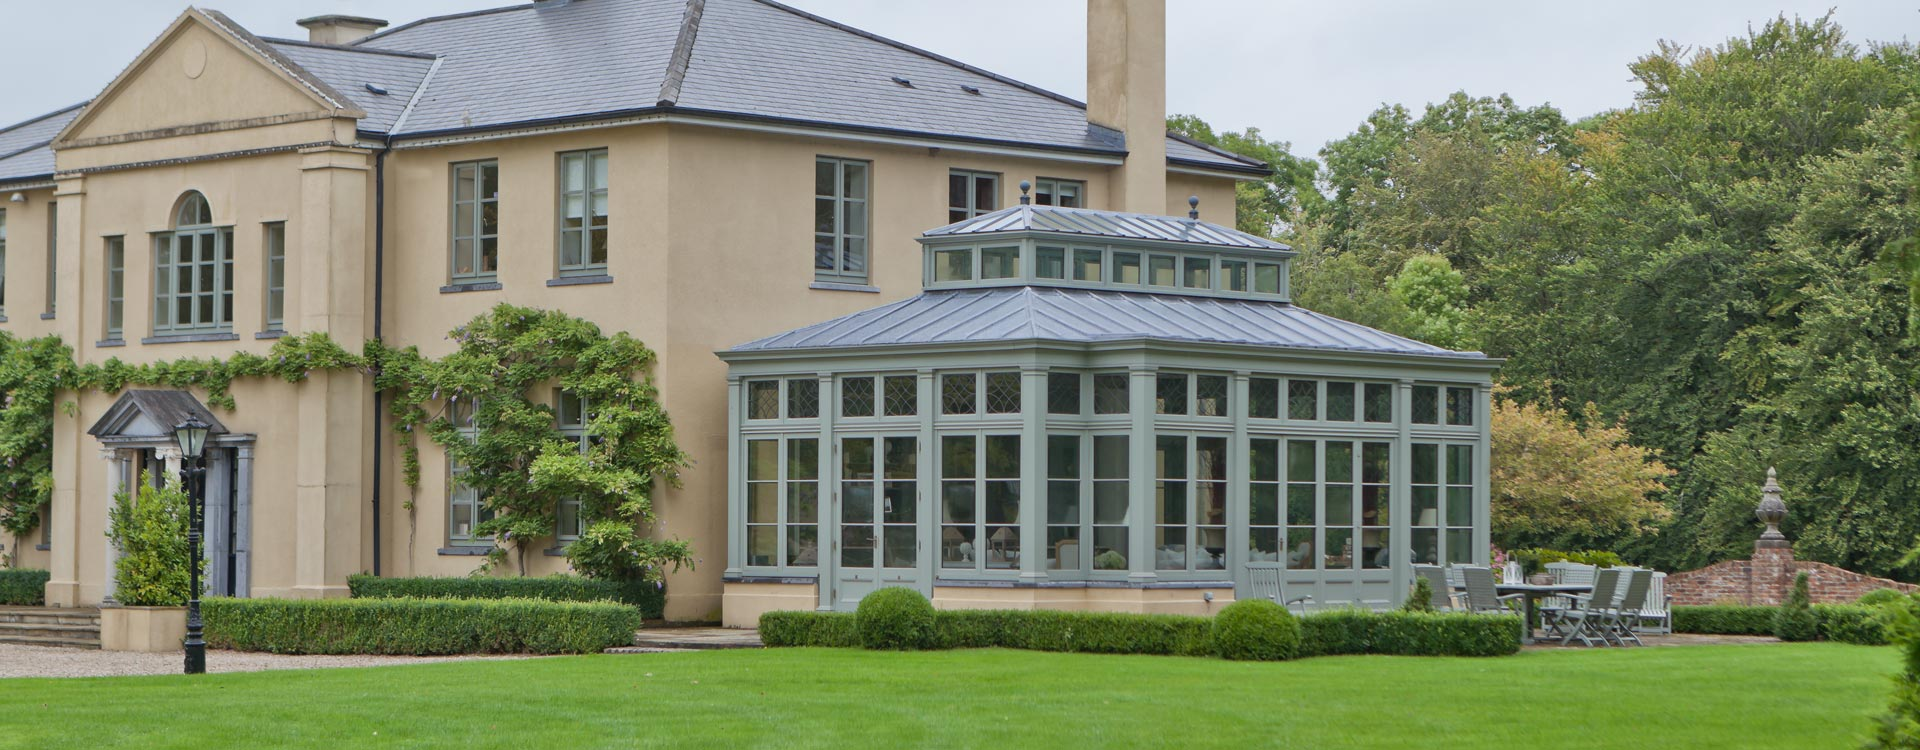 Conservatory in Ireland